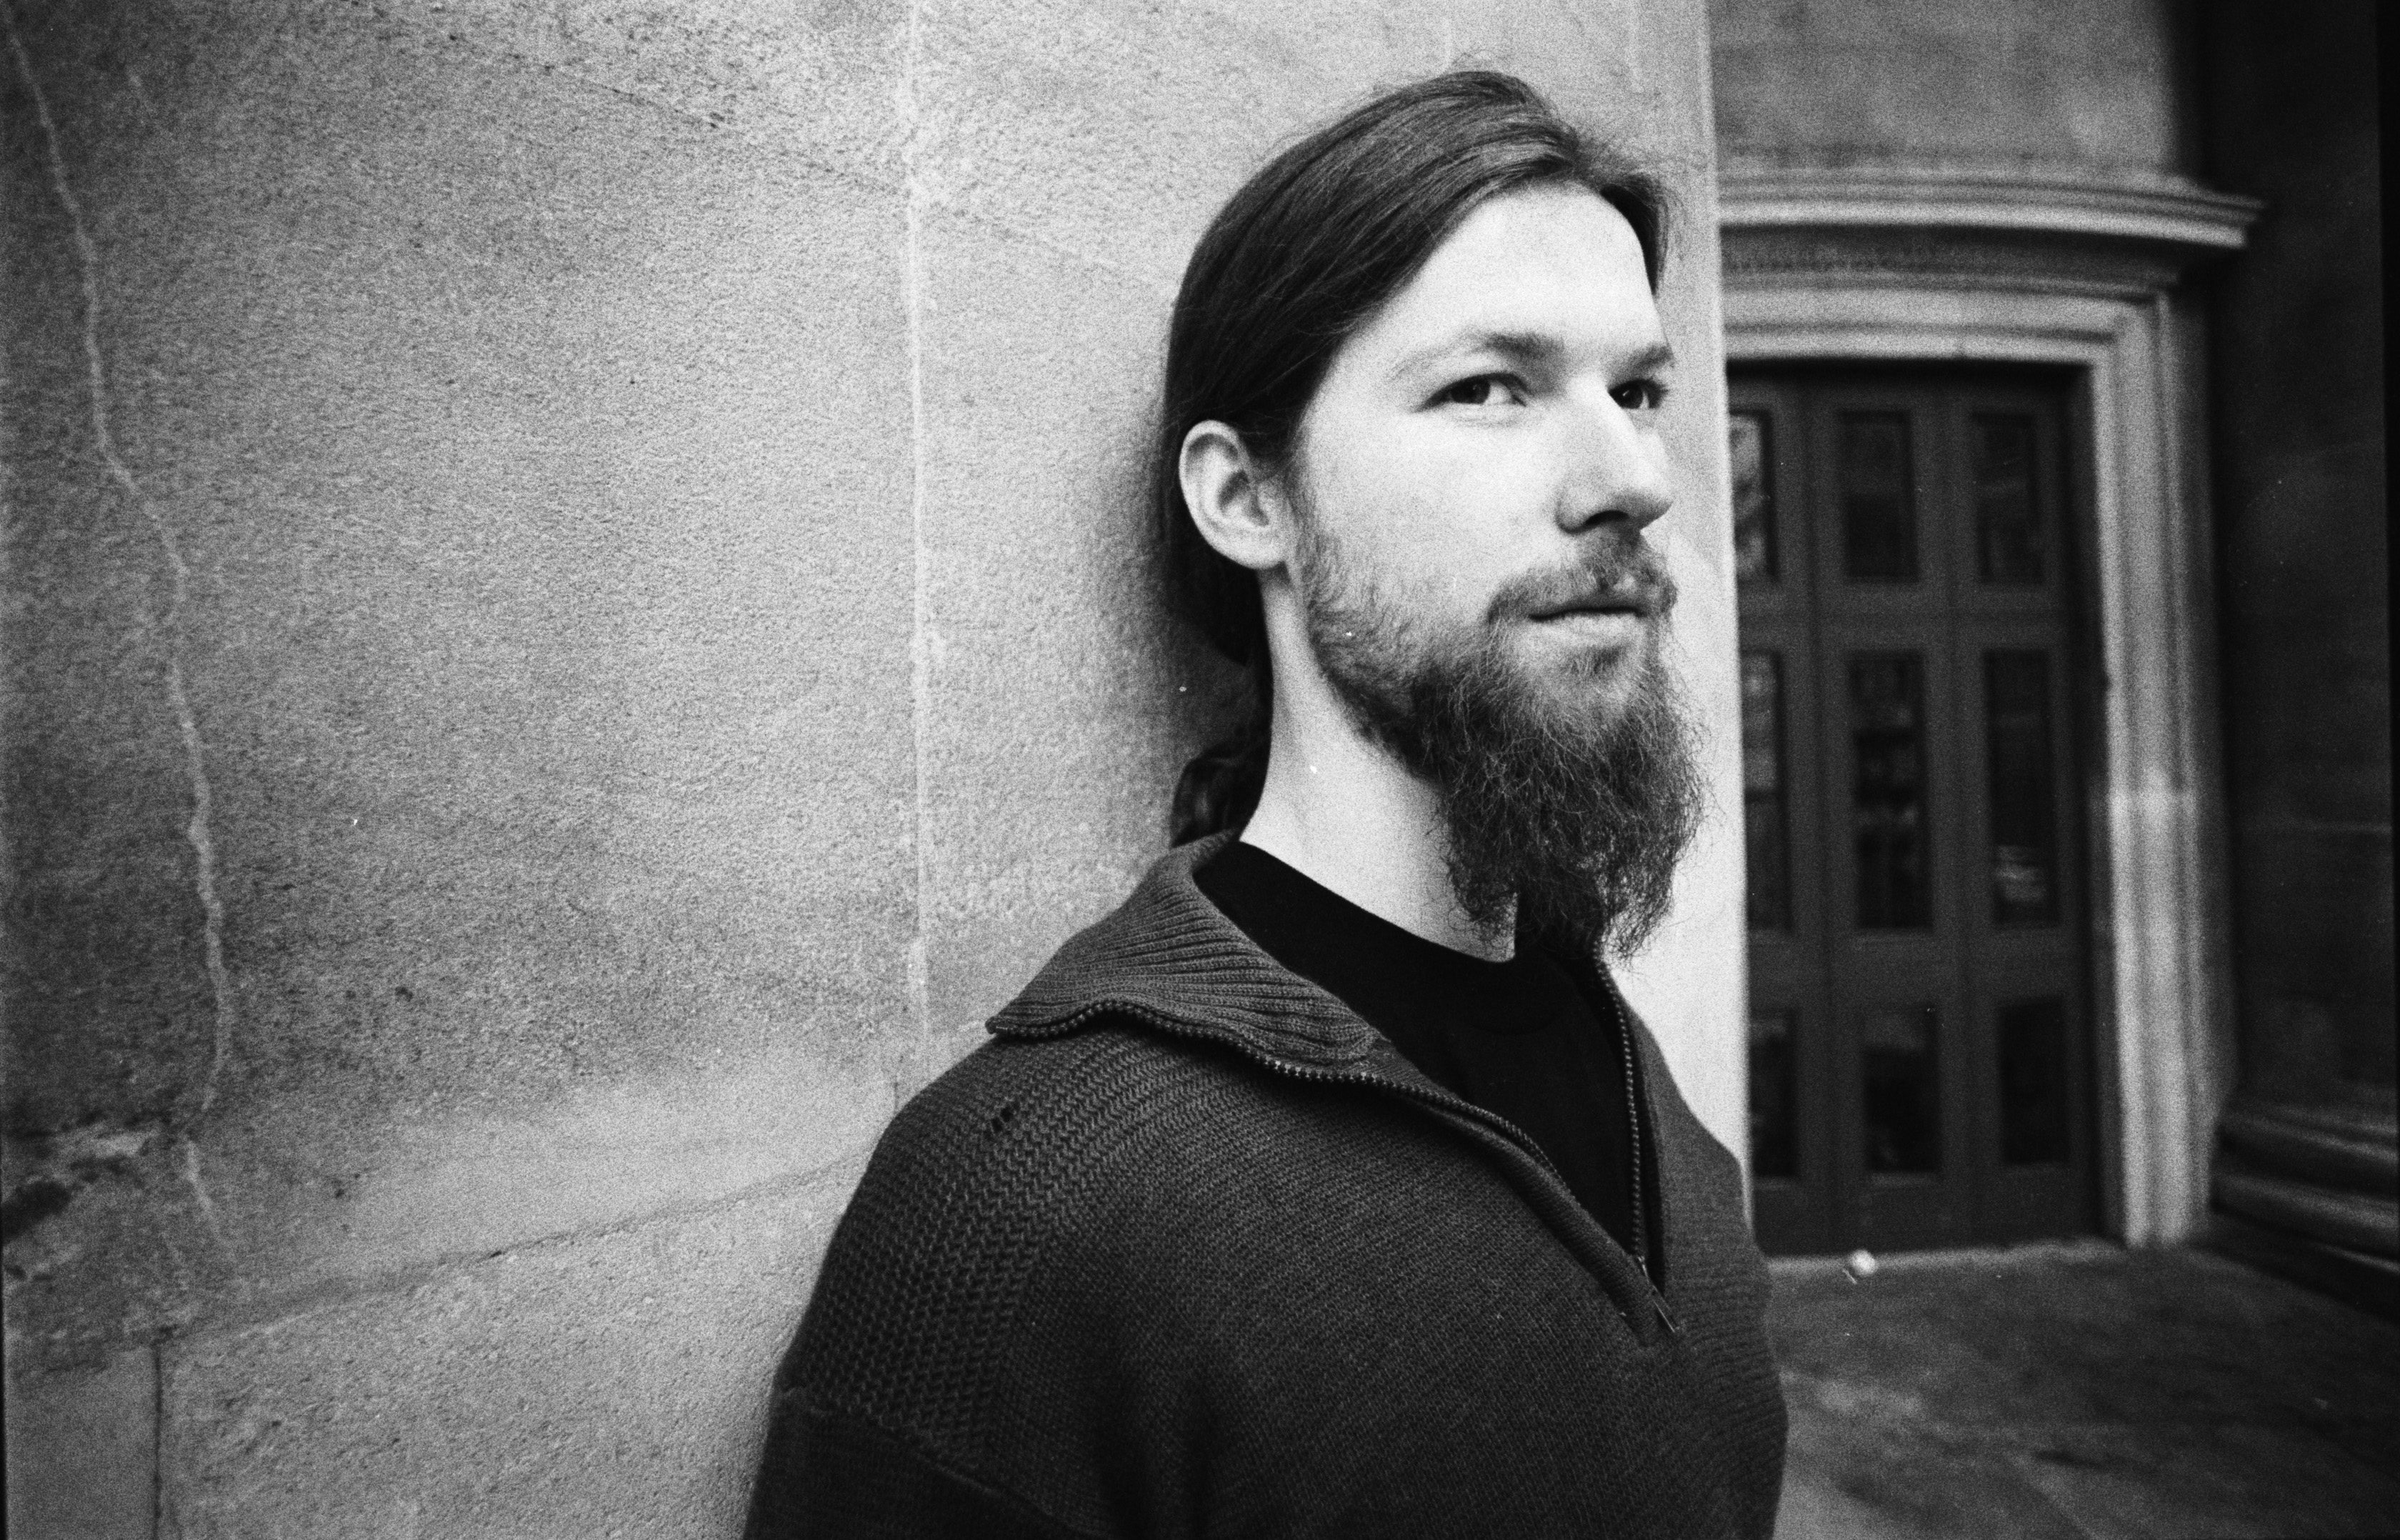 Aphex Twins Avril 14th How Drukqs Piano Lullaby Became A